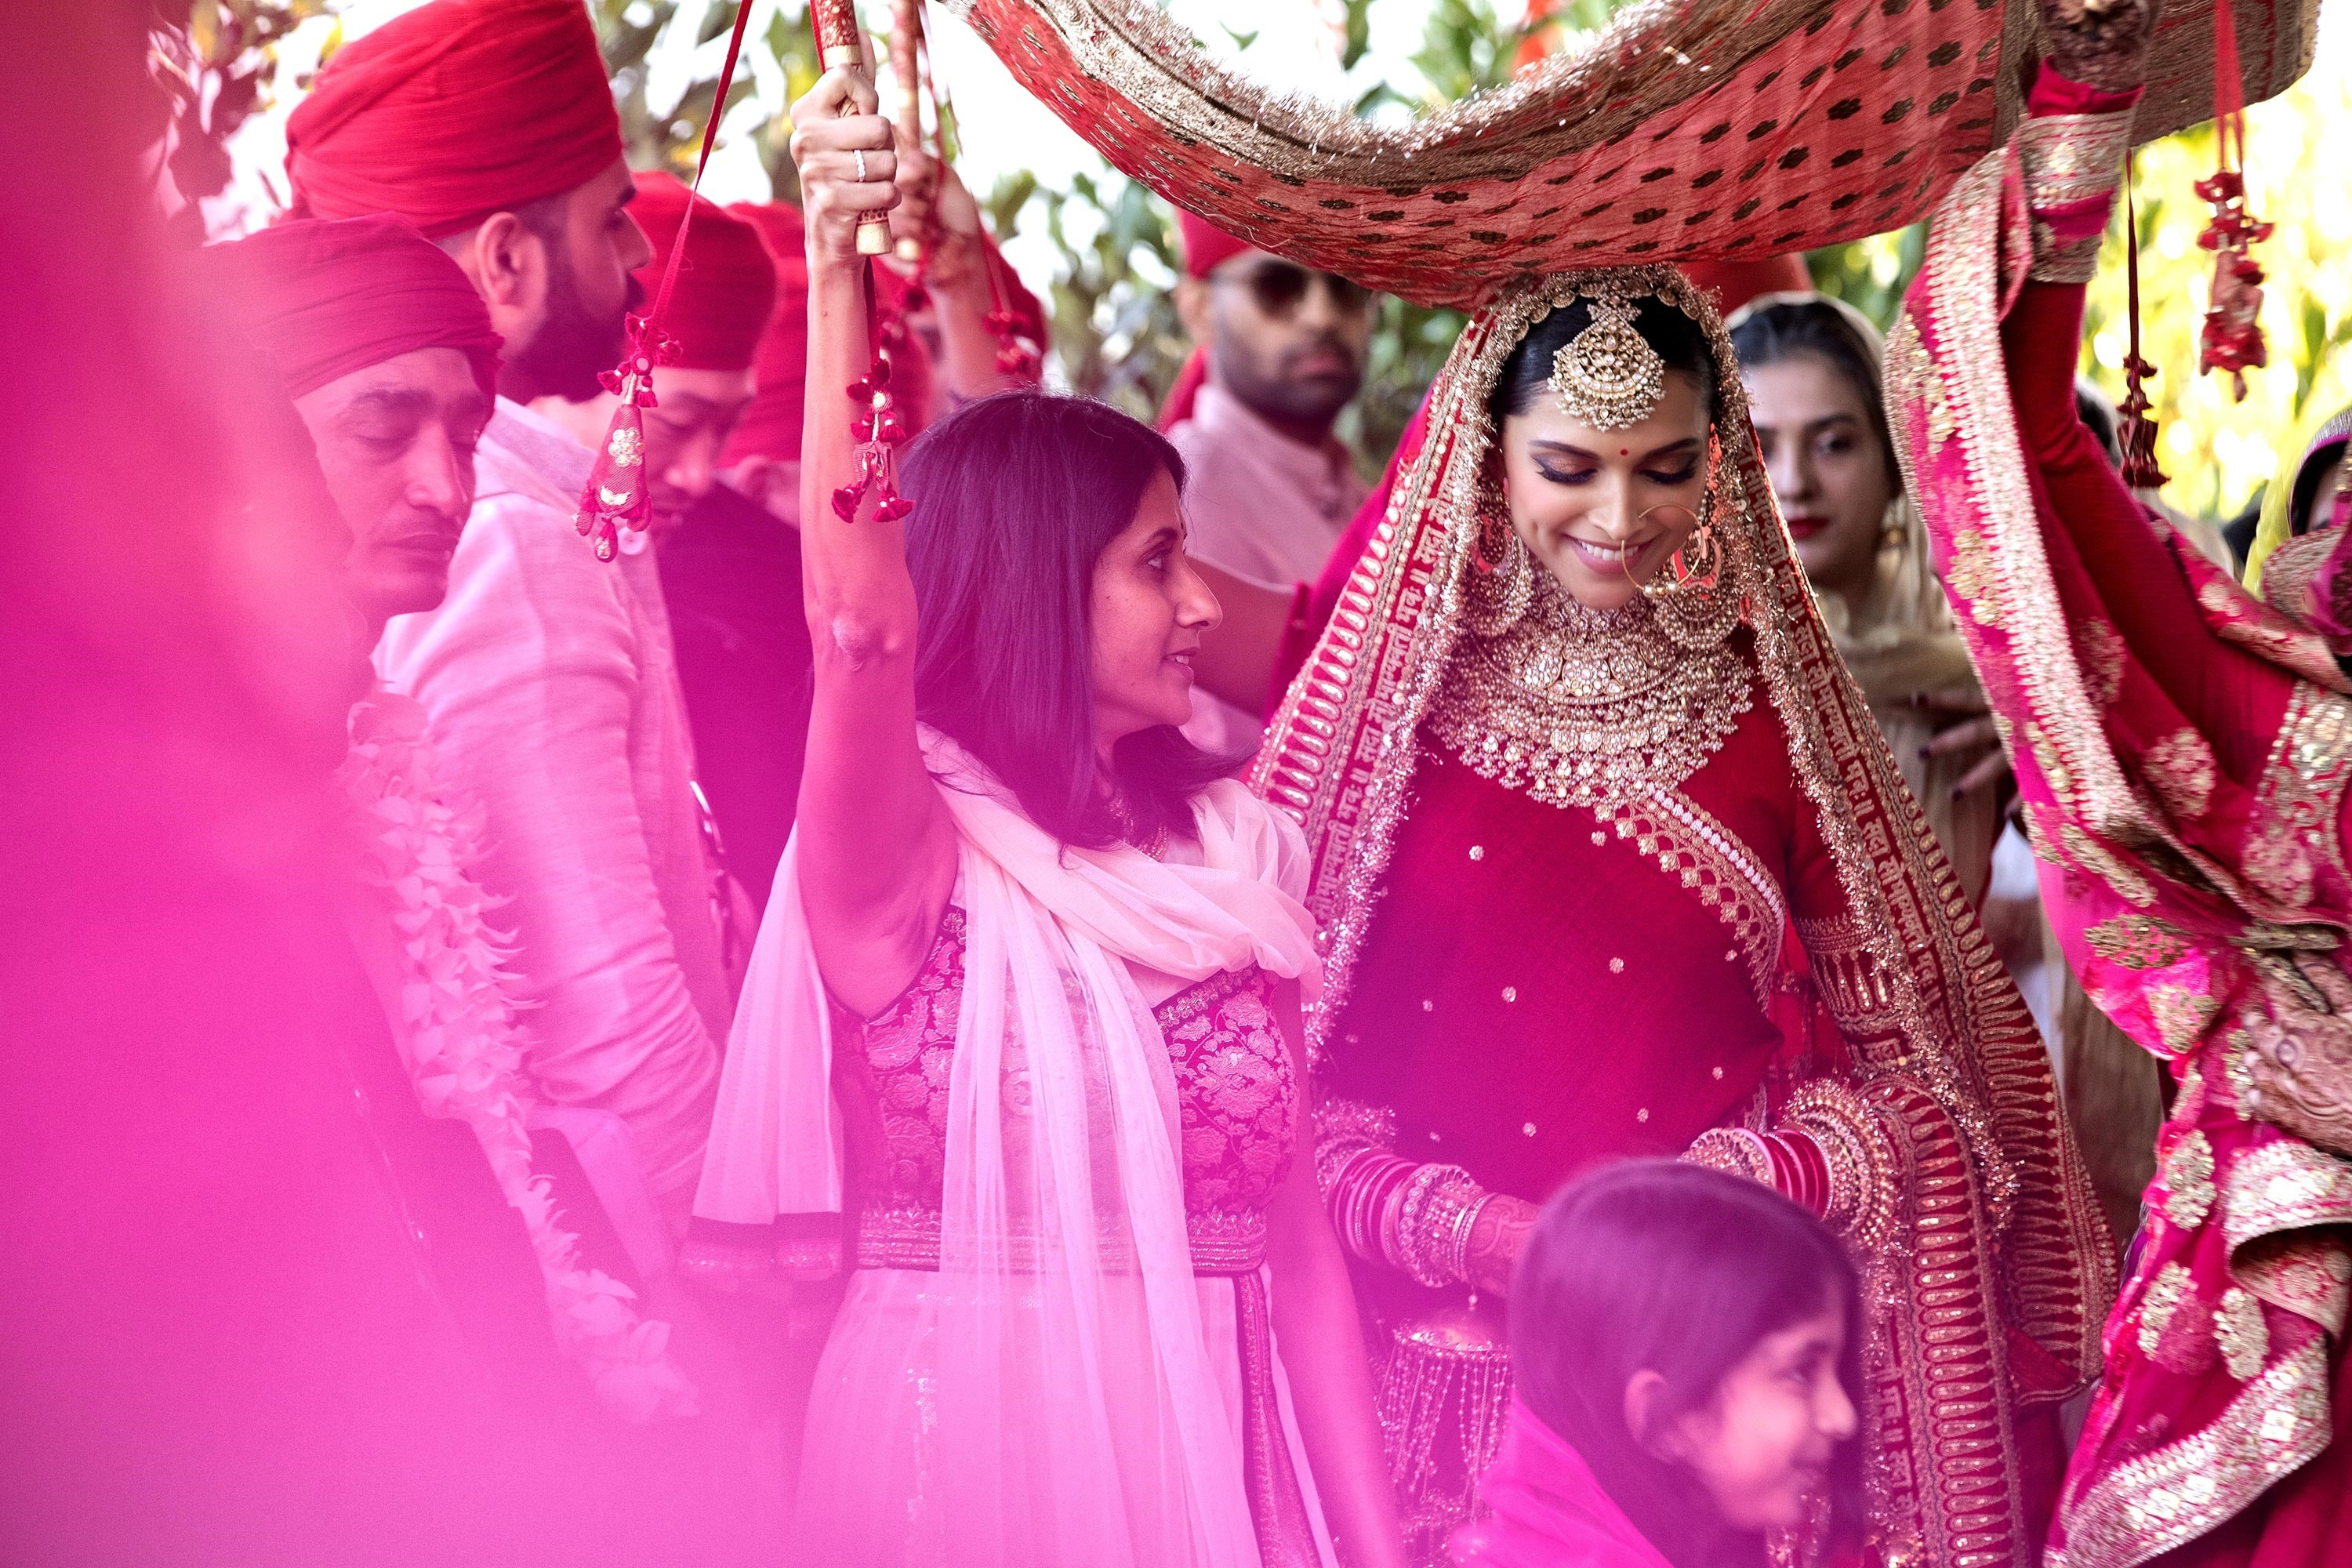 The 9 biggest Indian wedding trends that will rule 2019